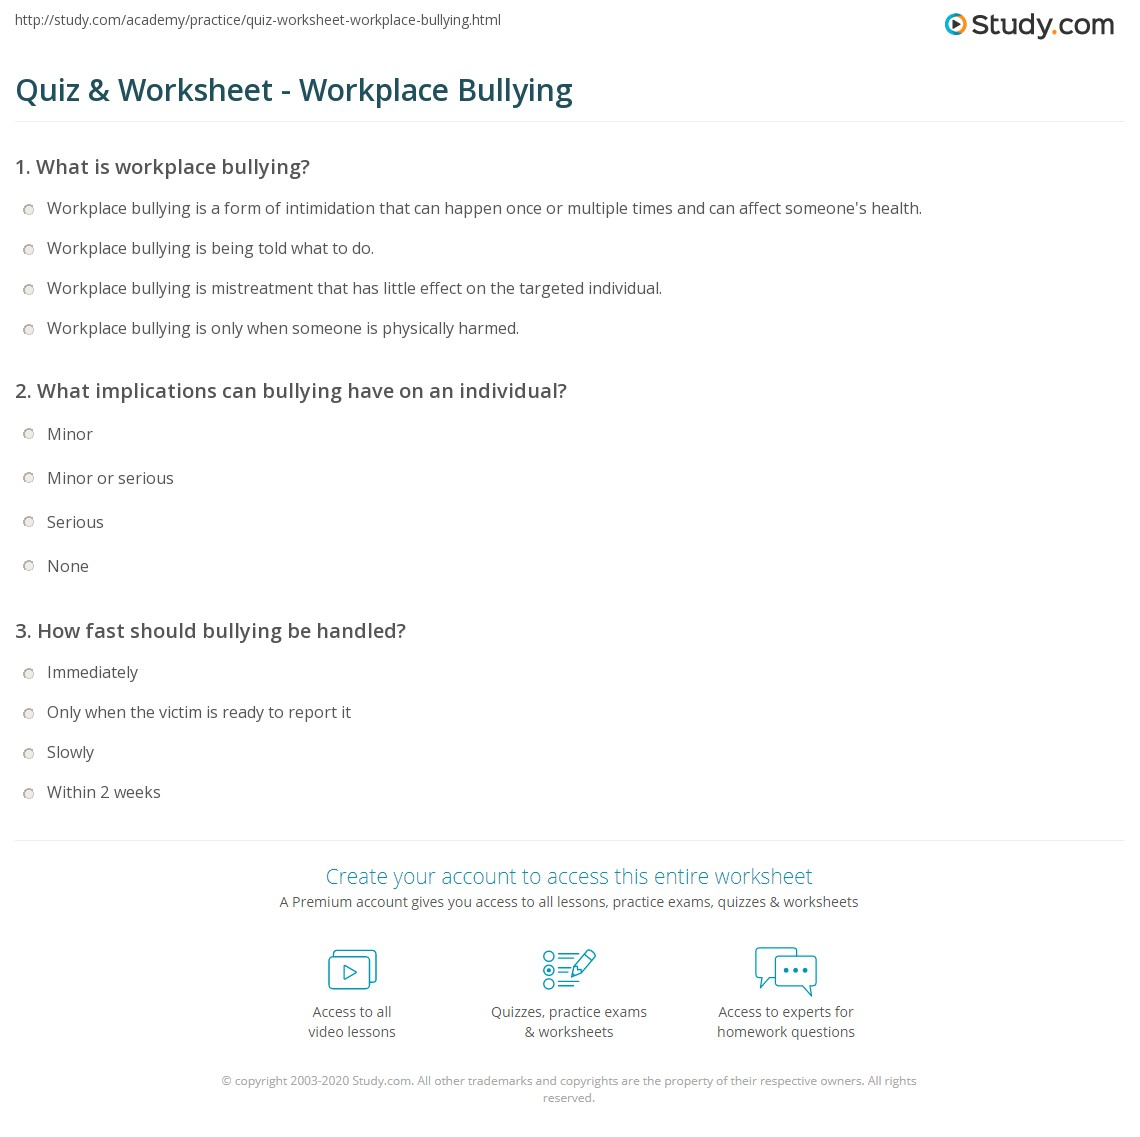 Worksheets Bullying Worksheets quiz worksheet workplace bullying study com print in the worksheet